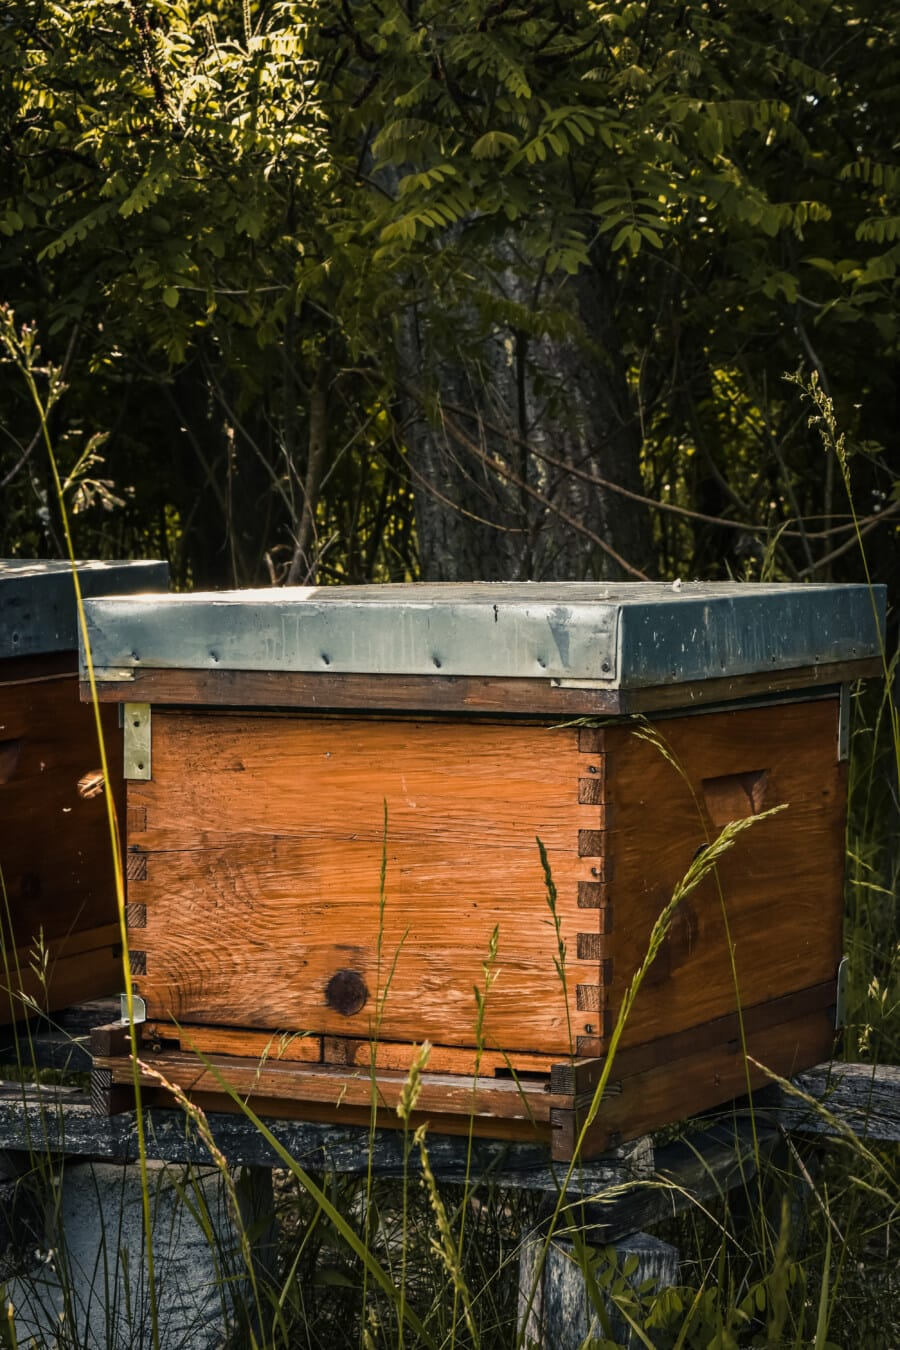 wooden, beehive, vintage, box, agriculture, wood, tree, old, summer, abandoned